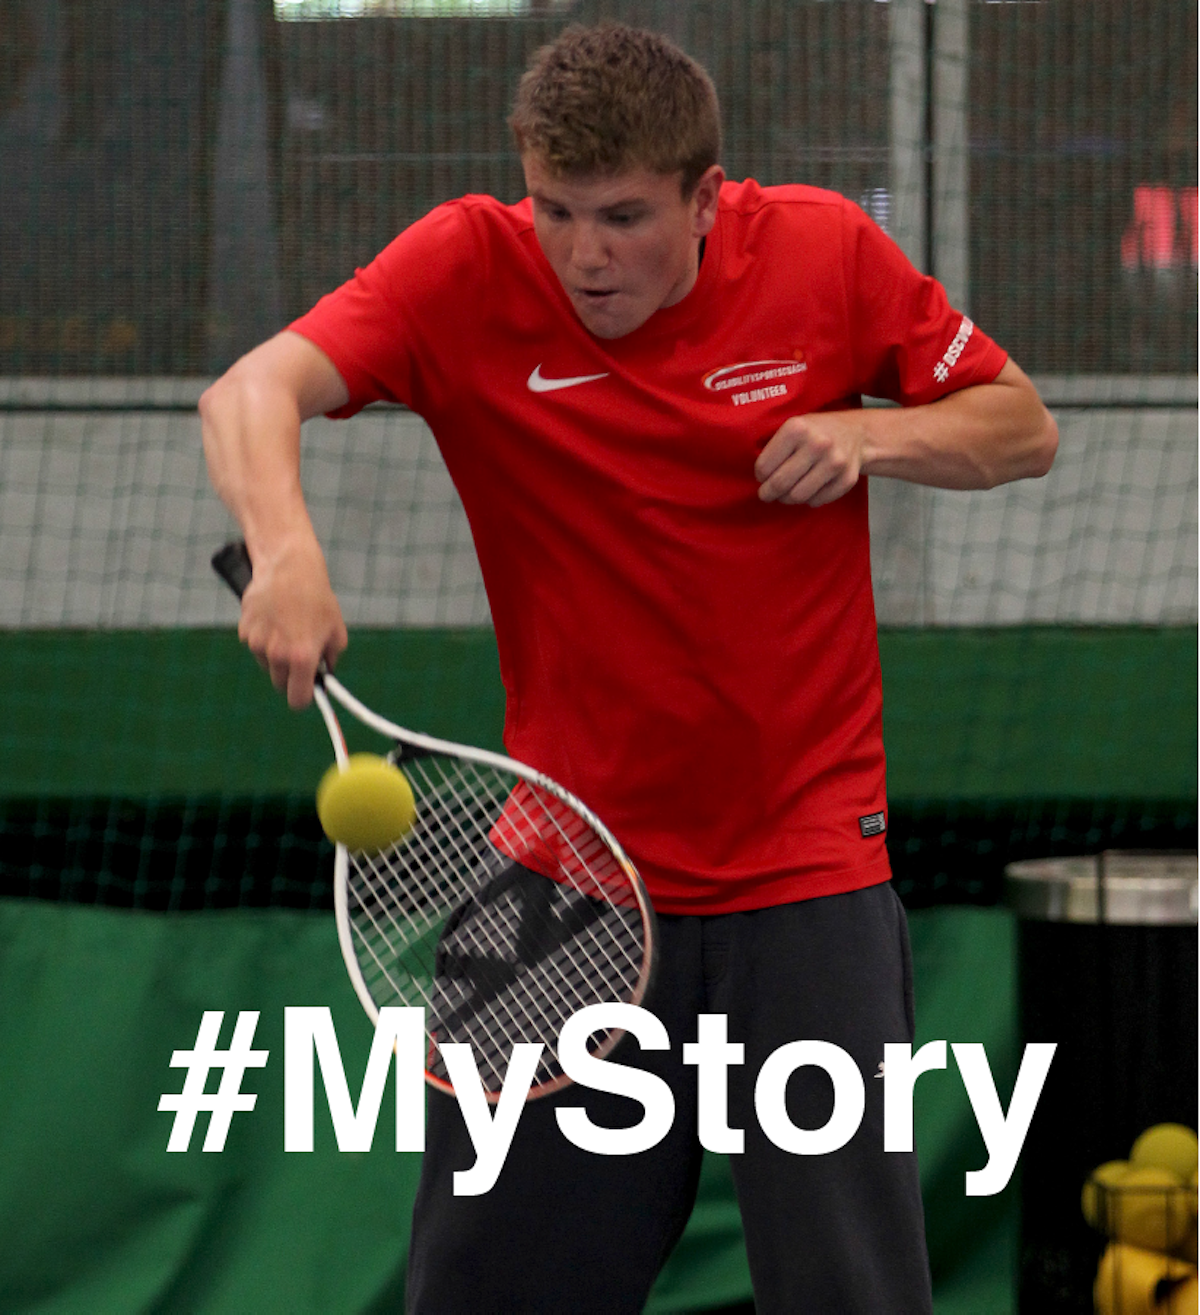 #MyStory - Ben, Club Wandsworth - Disability Sports Coach